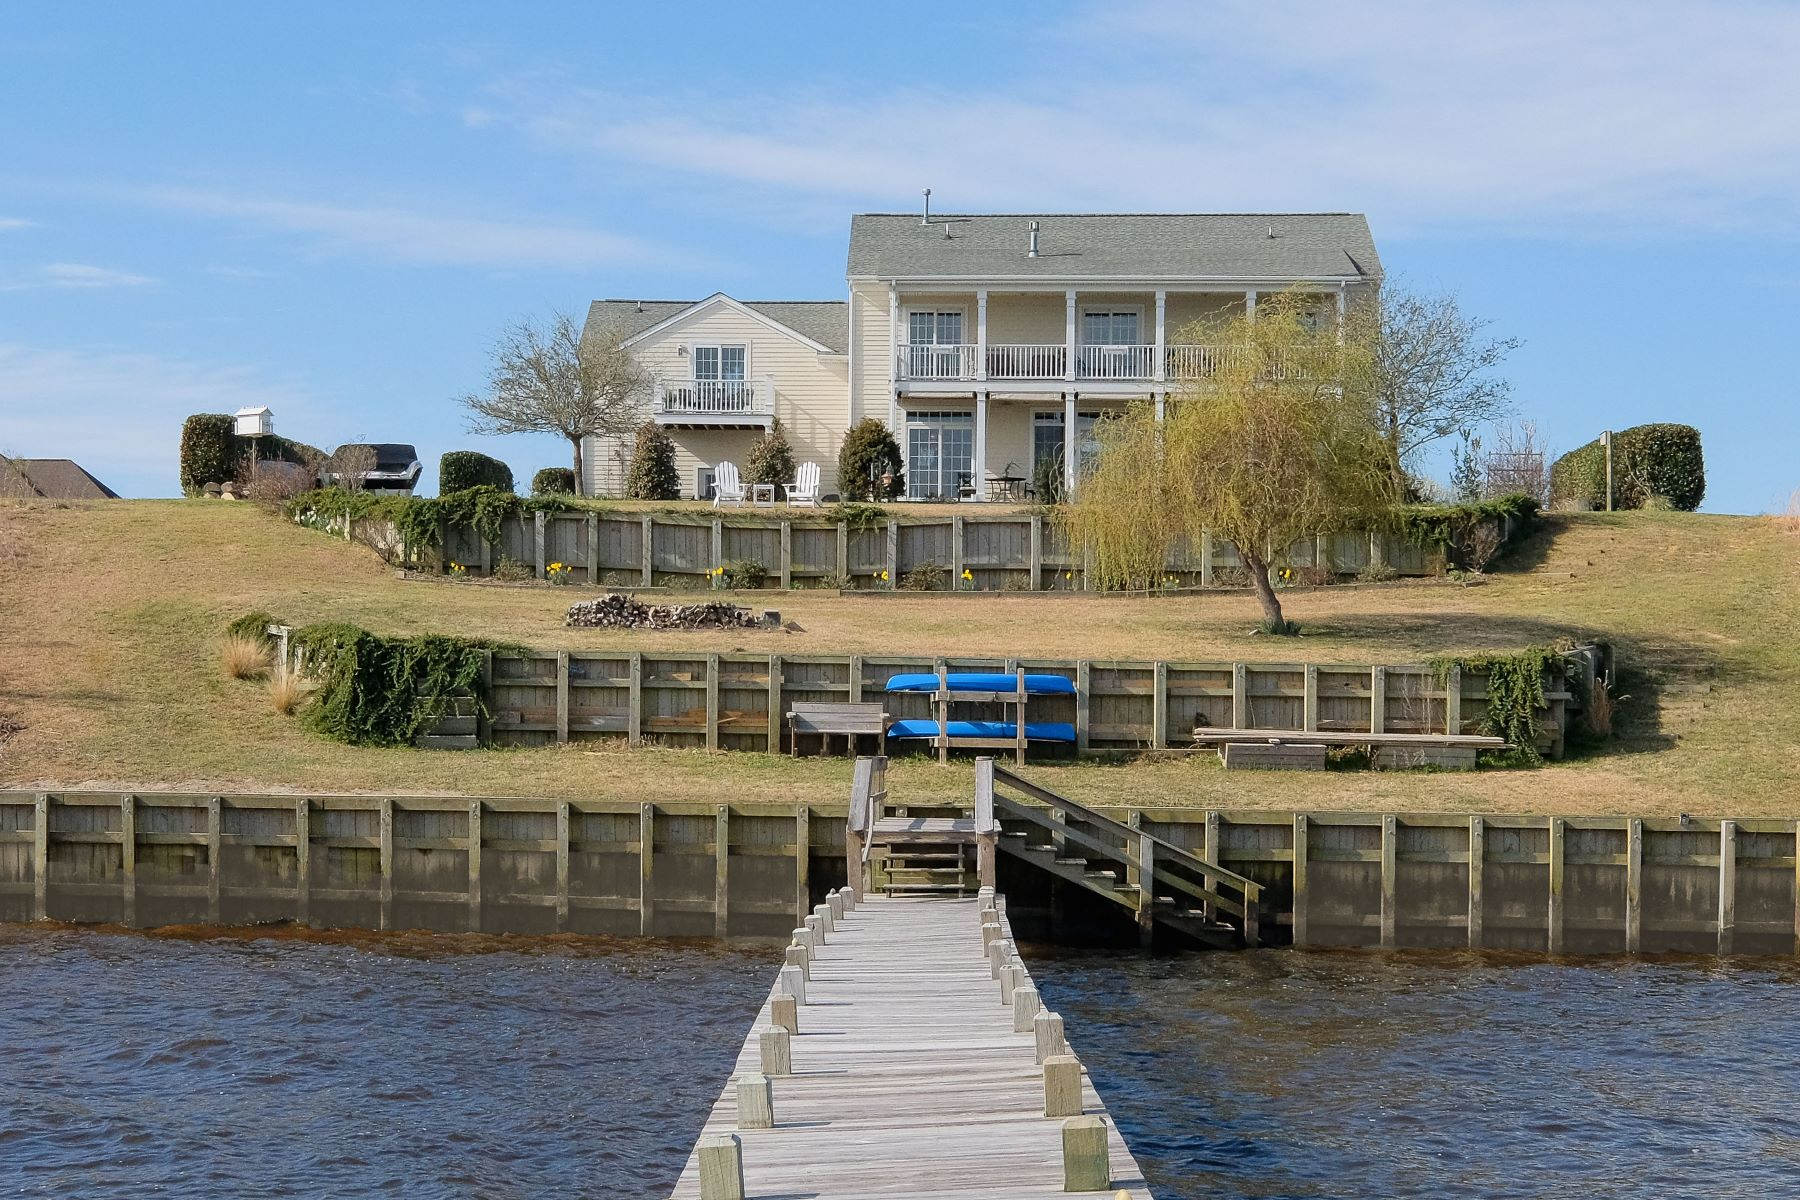 Single Family Home for Sale at Coastal Southern Riverfront 116 N Shore Drive Merry Hill, North Carolina, 27957 United States